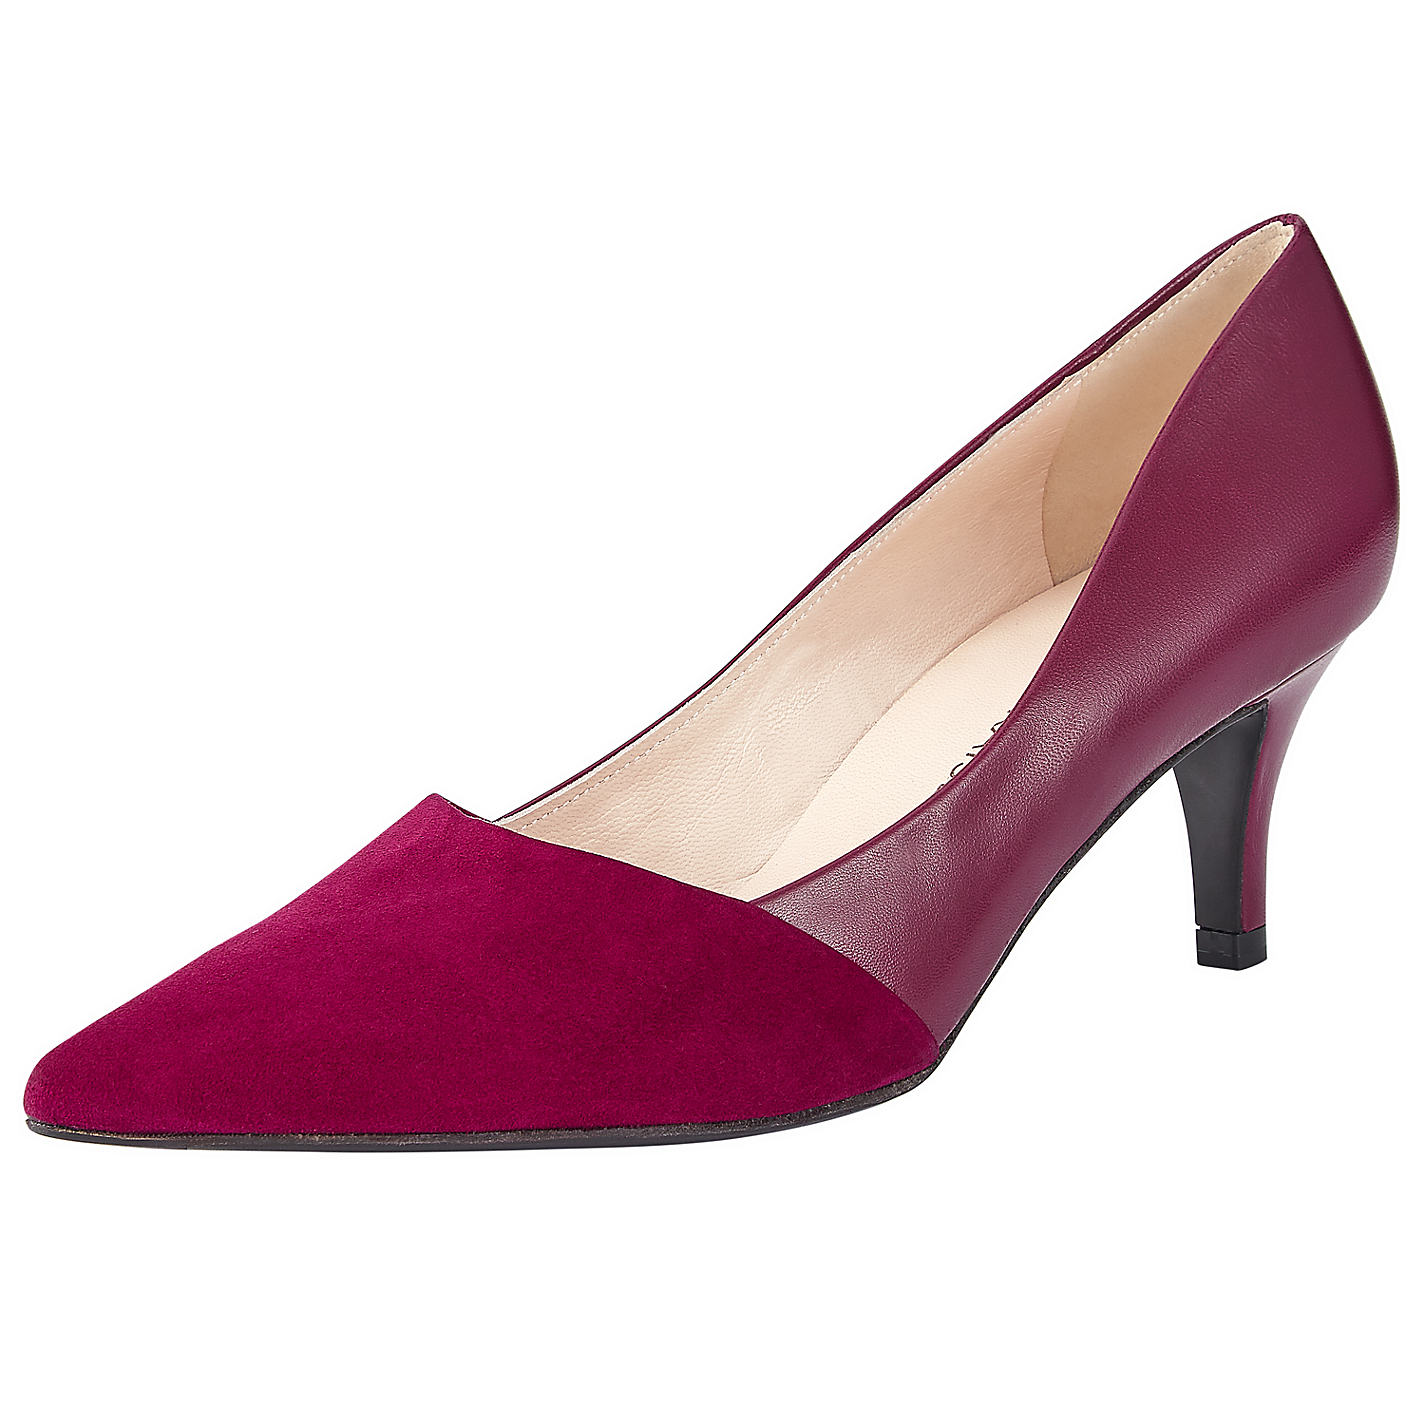 Fuschia Pink Kitten Heel Shoes